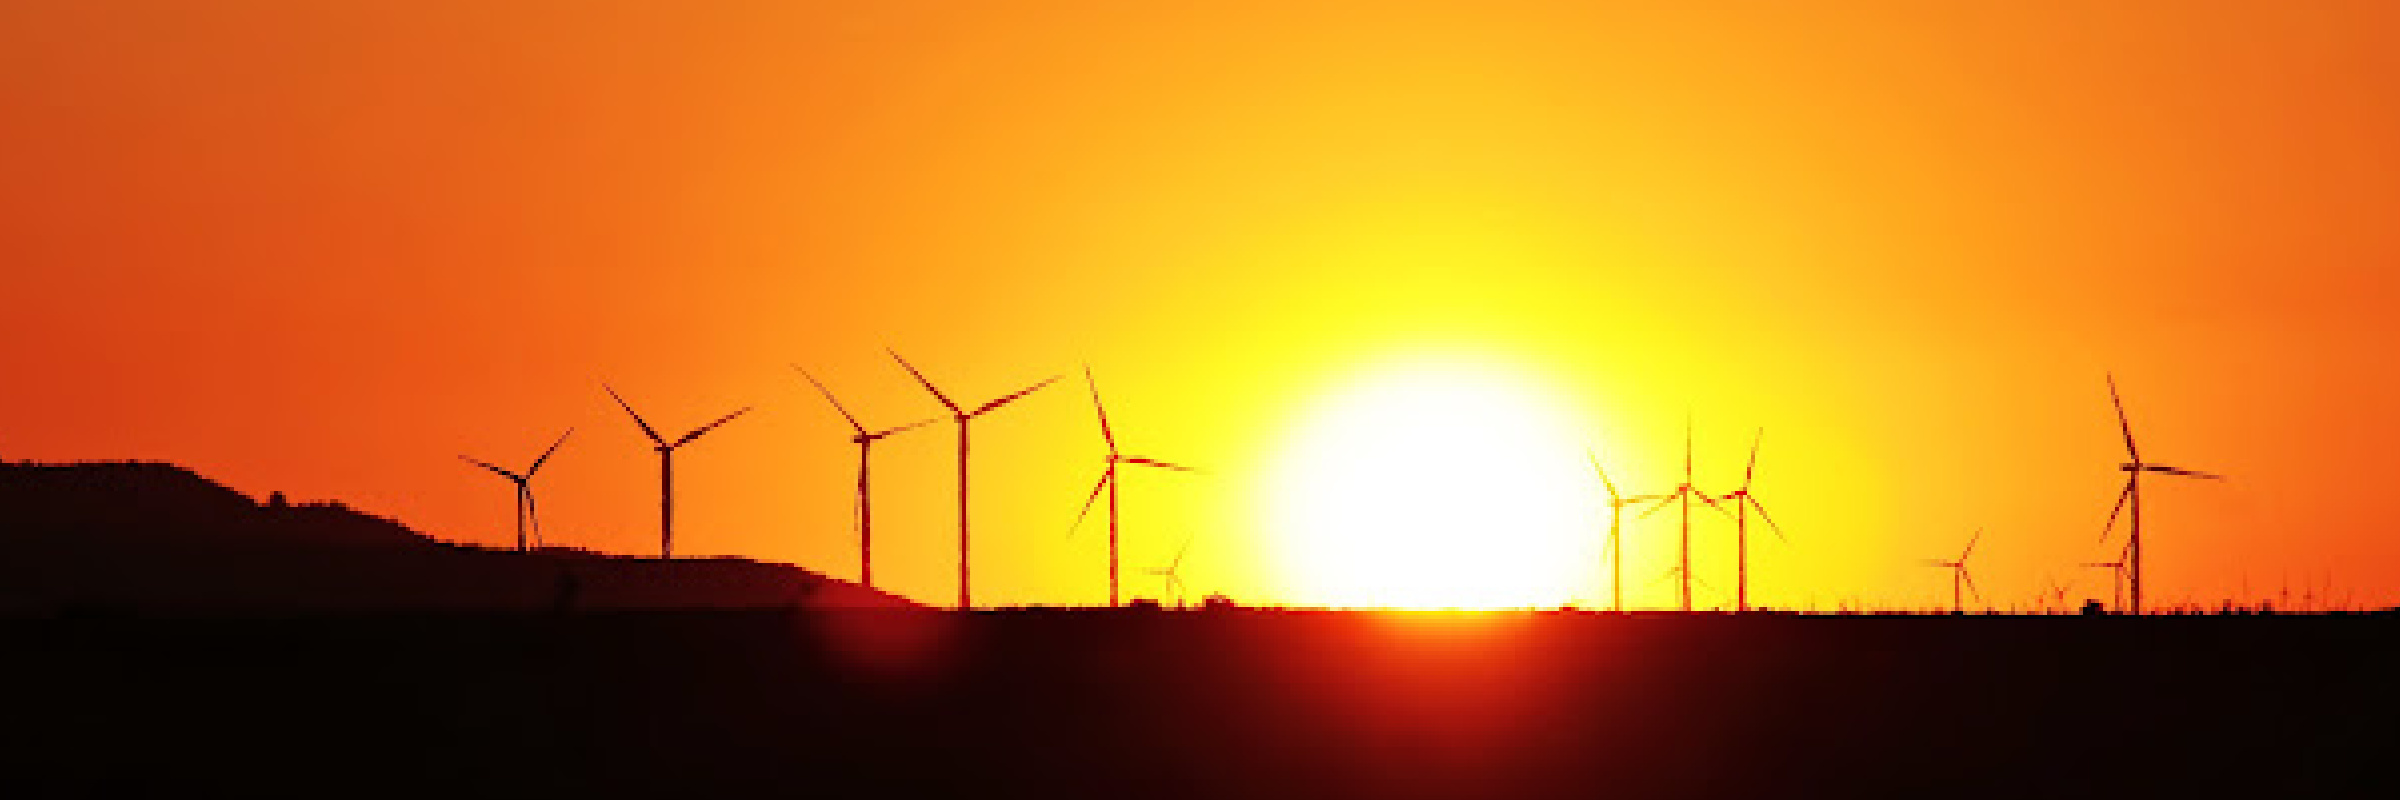 Take the next step to accelerate Queensland's transition to clean, renewable energy